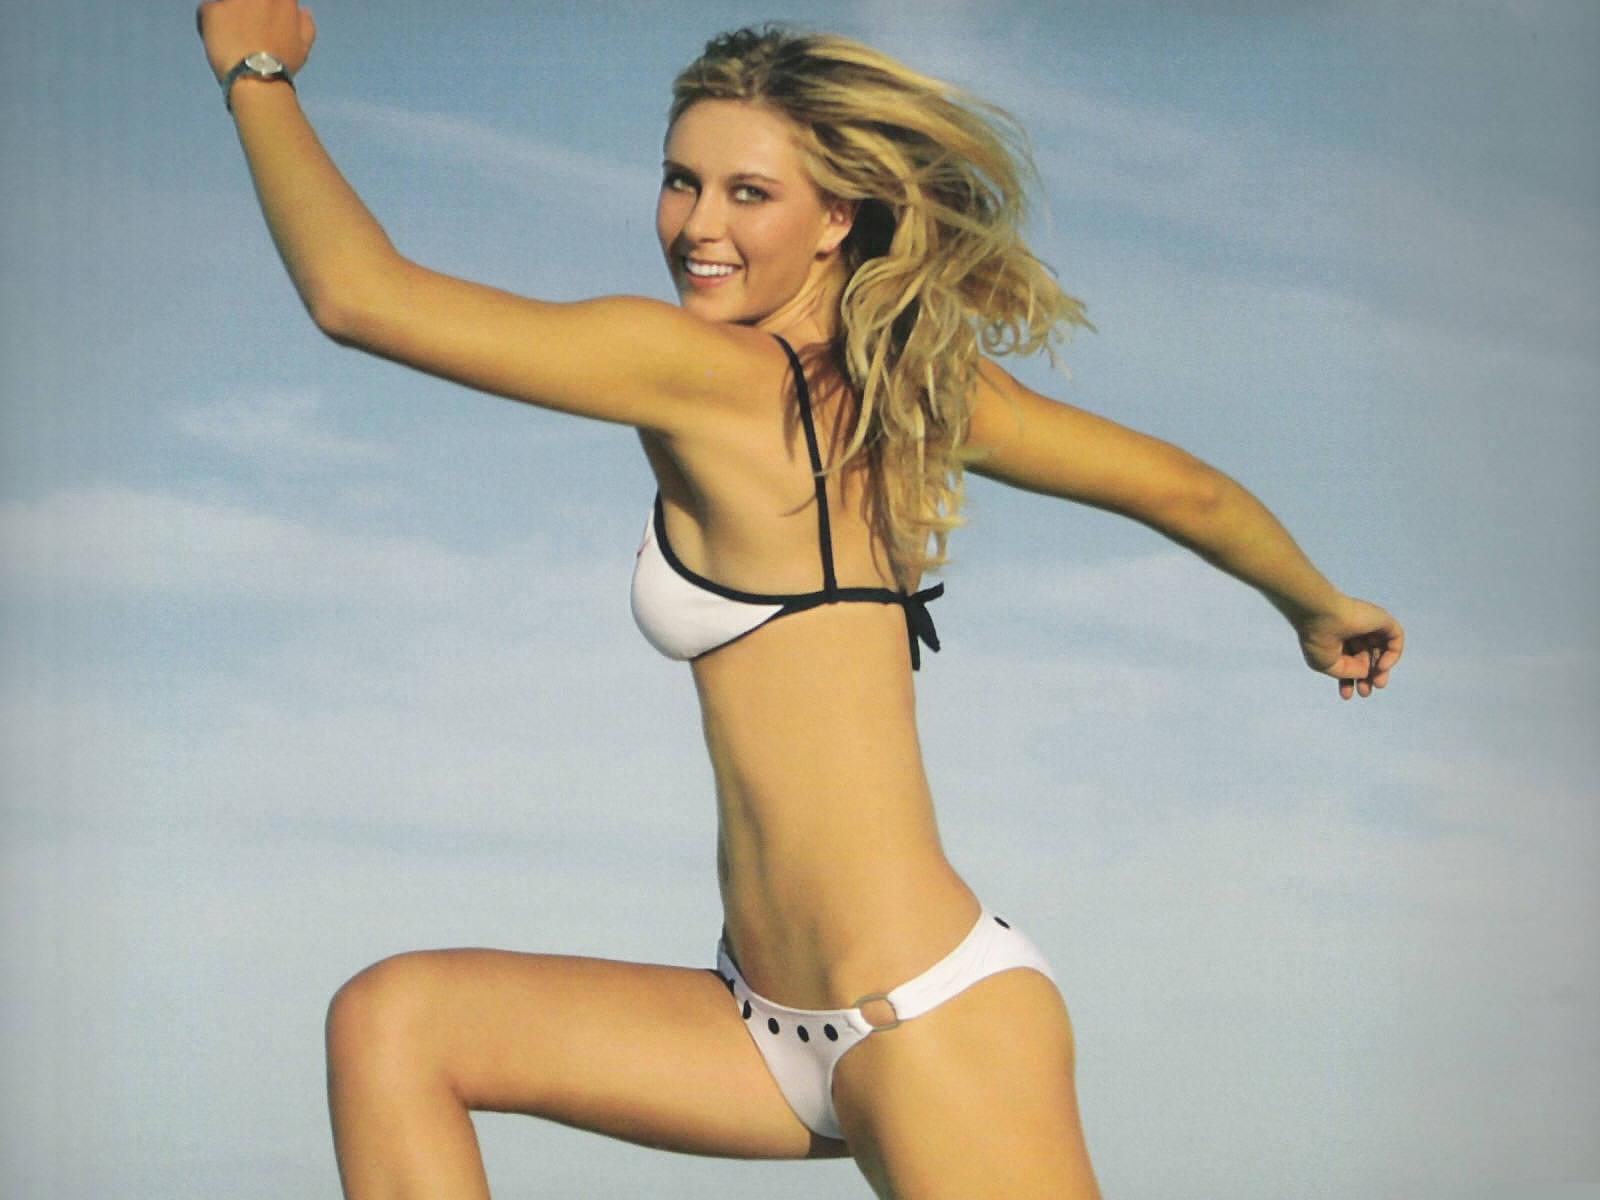 Maria Sharapova Bikini Wallpapers 2011